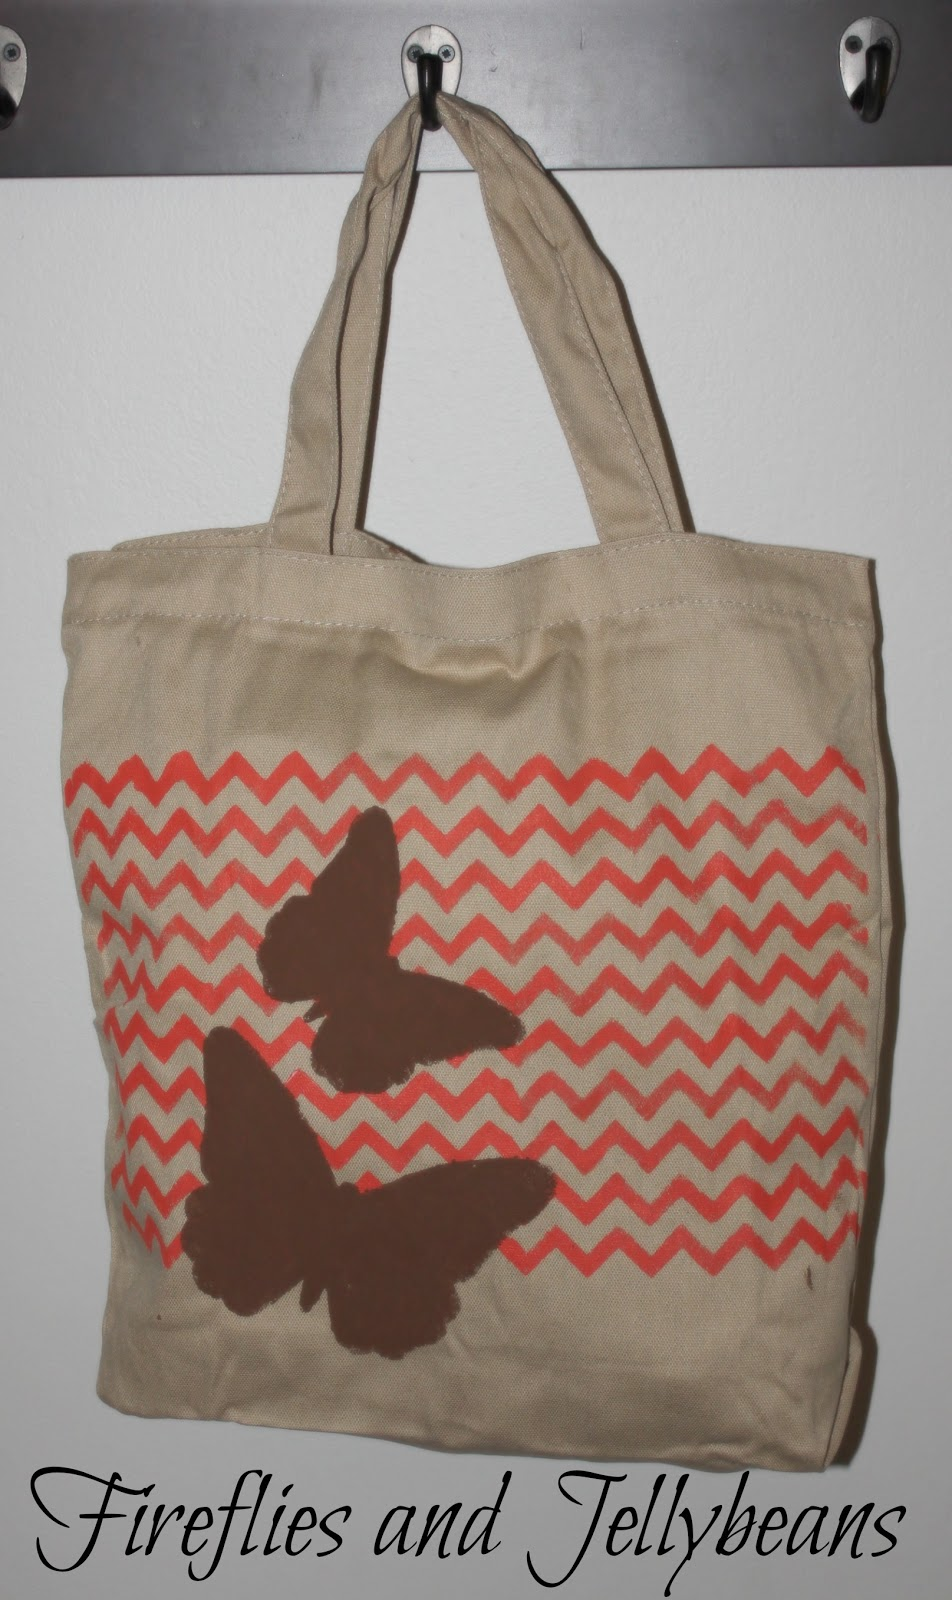 Fireflies and Jellybeans: Stencil Tote Bags ...